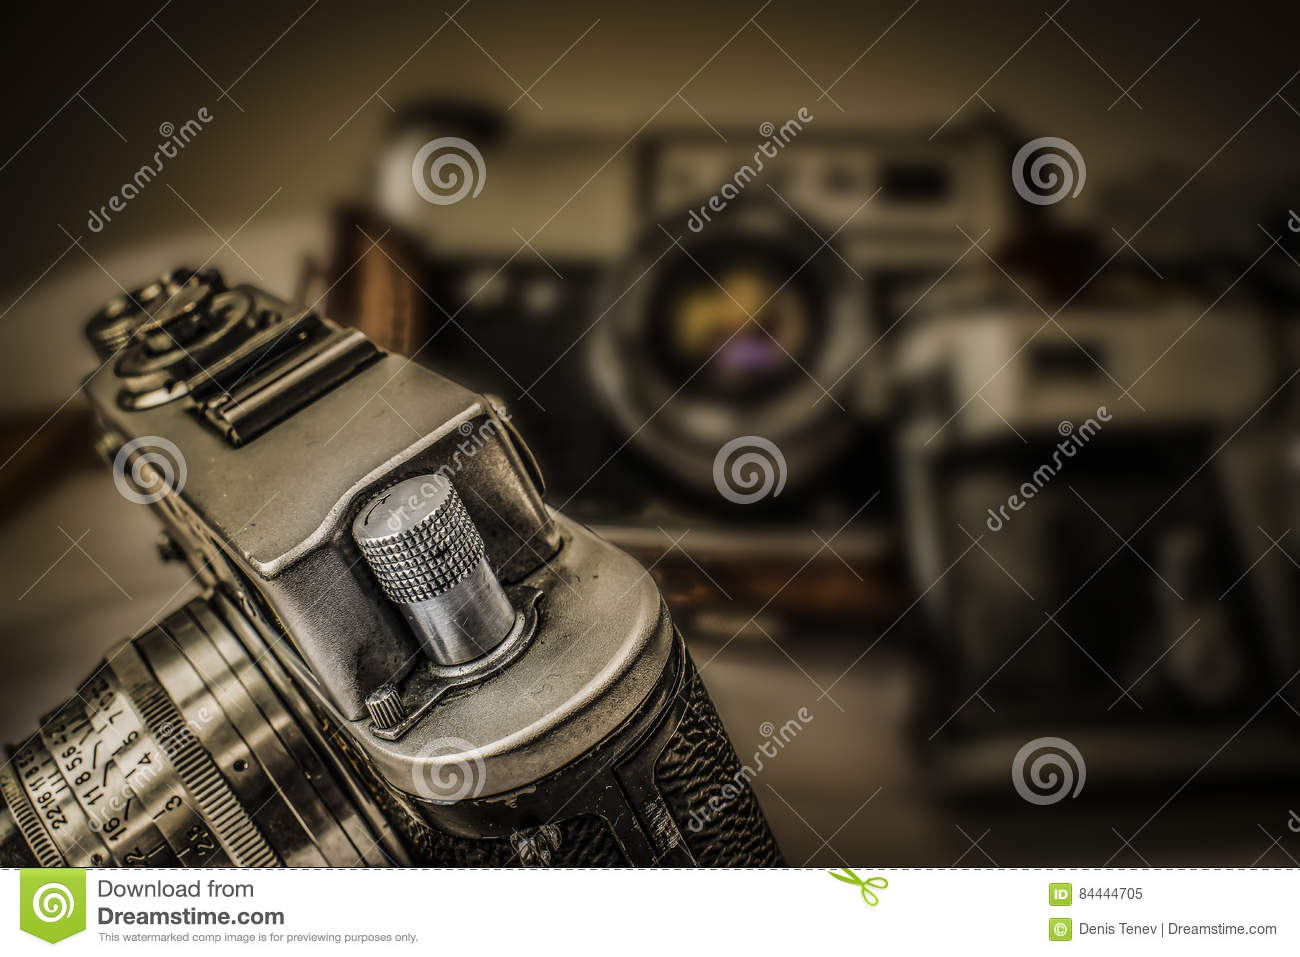 Old Russian analog film cameras with manual controls